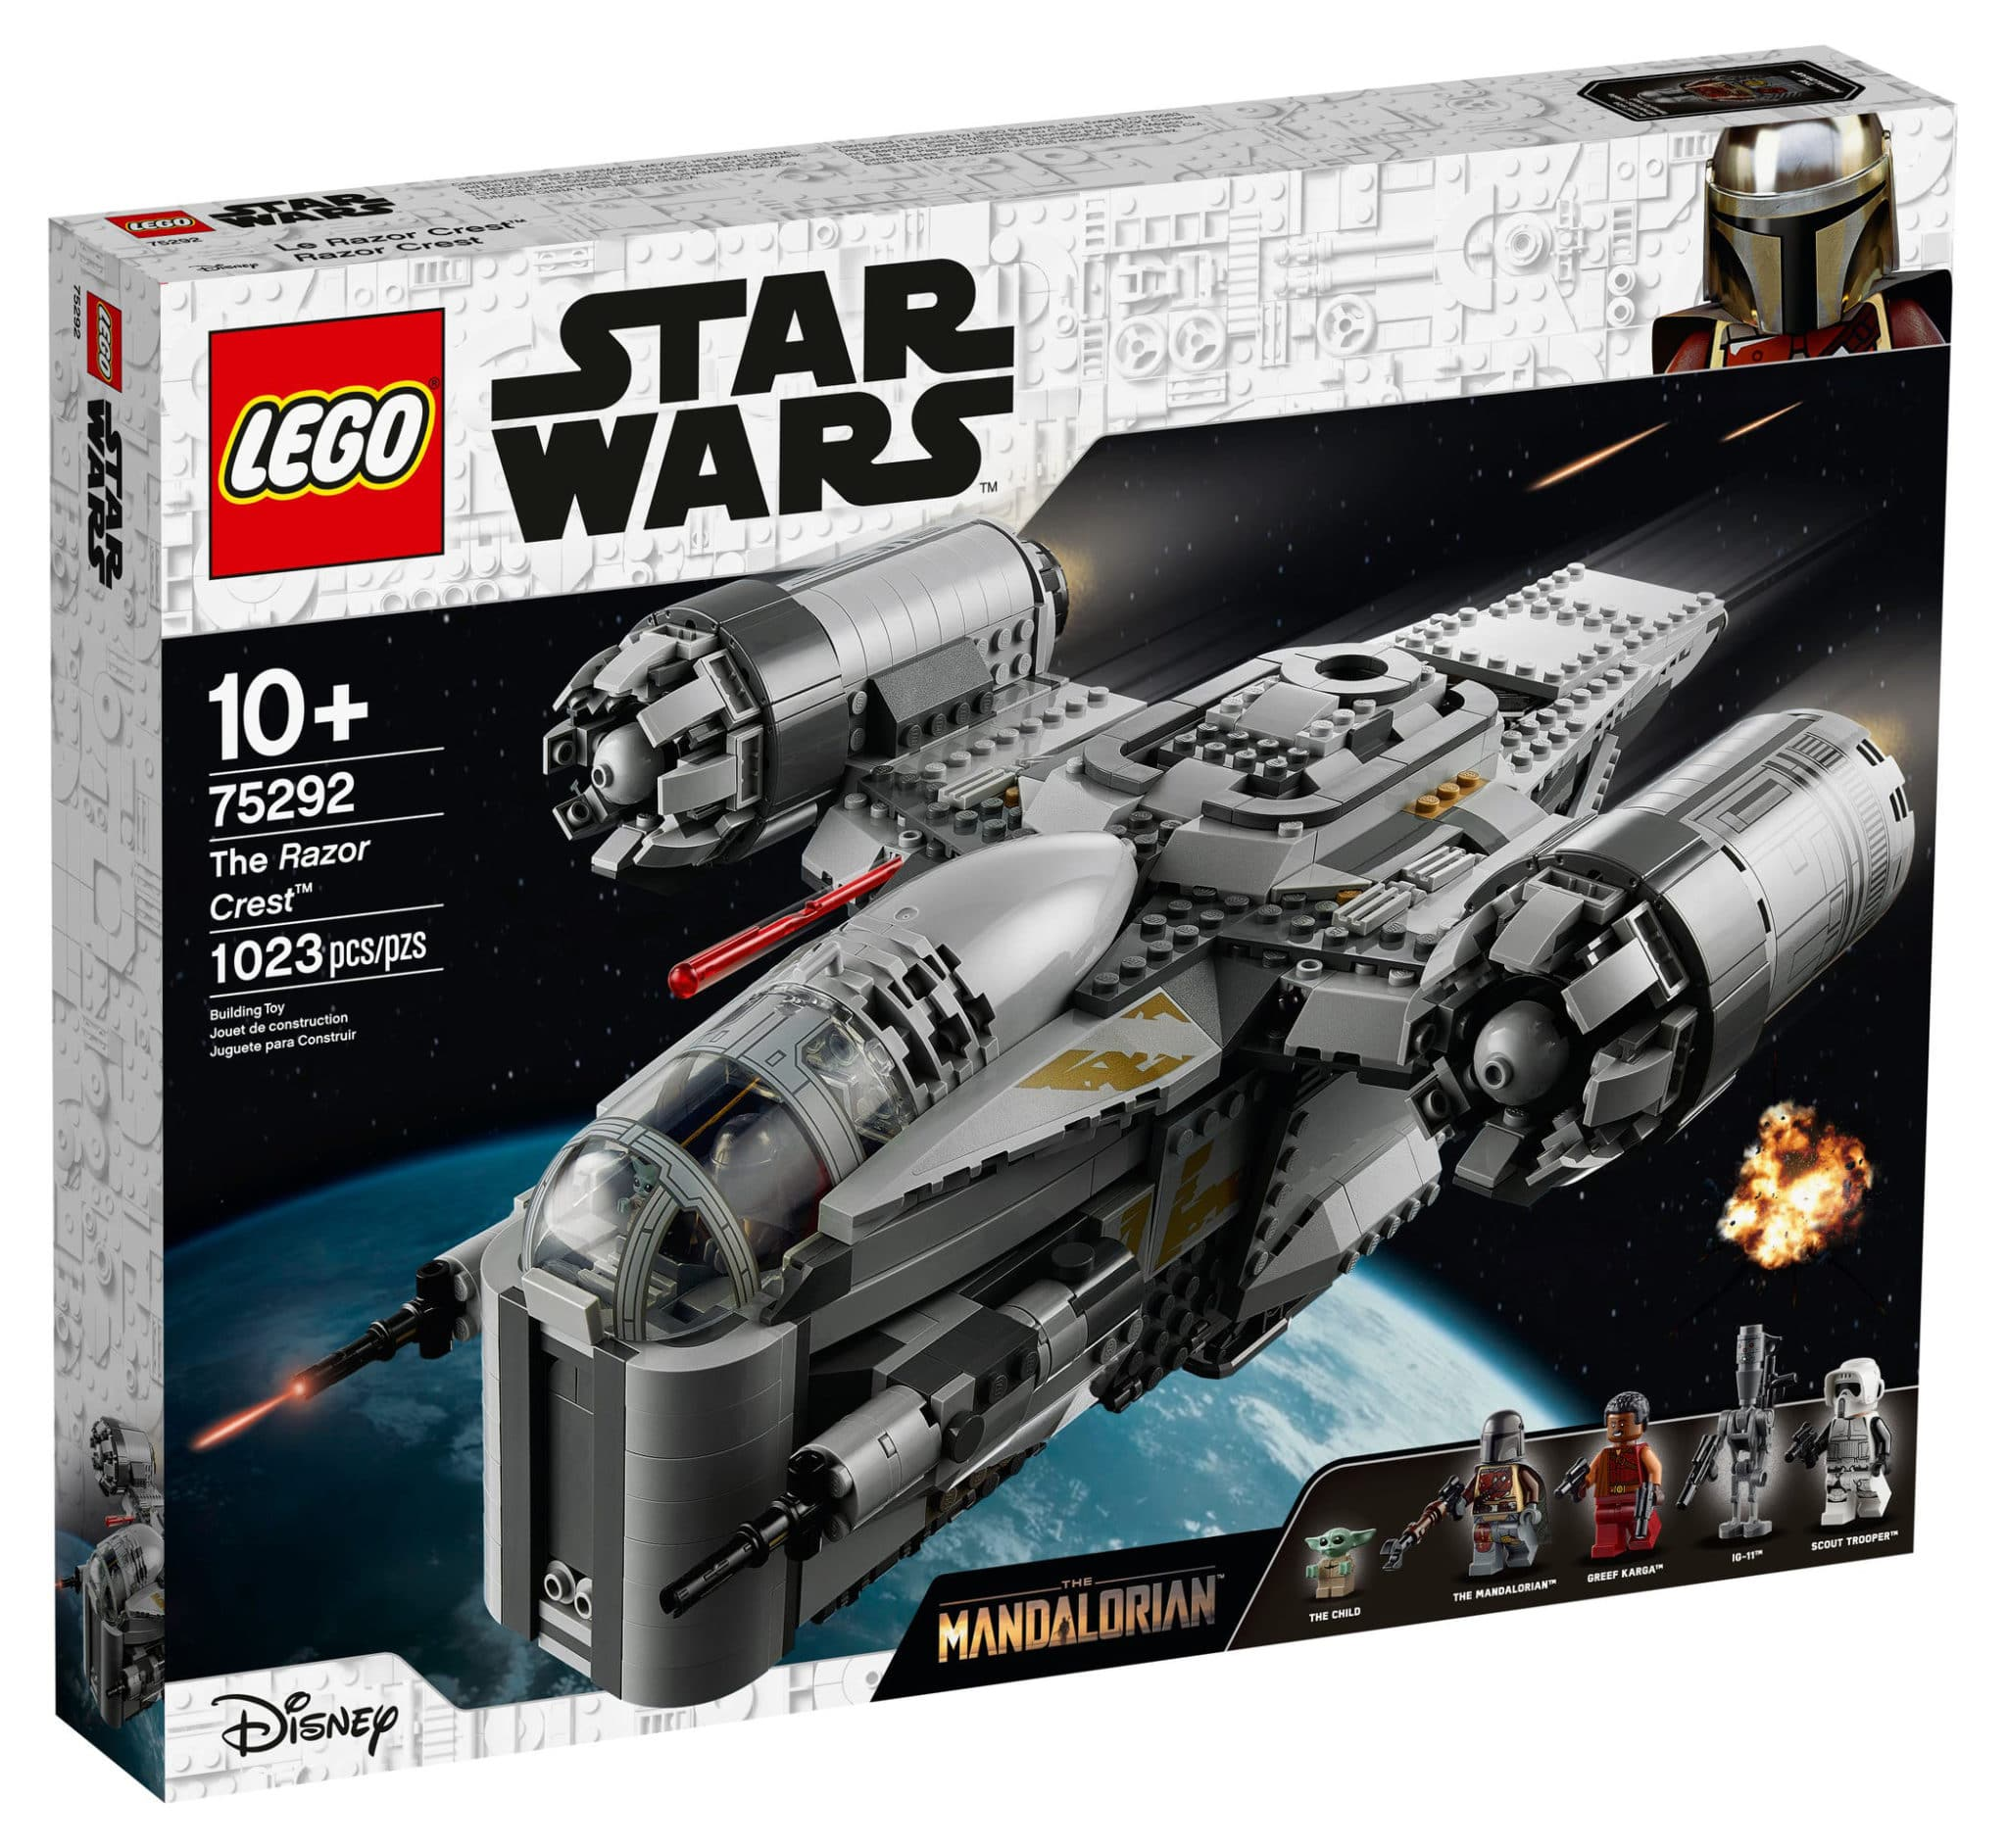 LEGO Star Wars 75292 Razor Crest Box